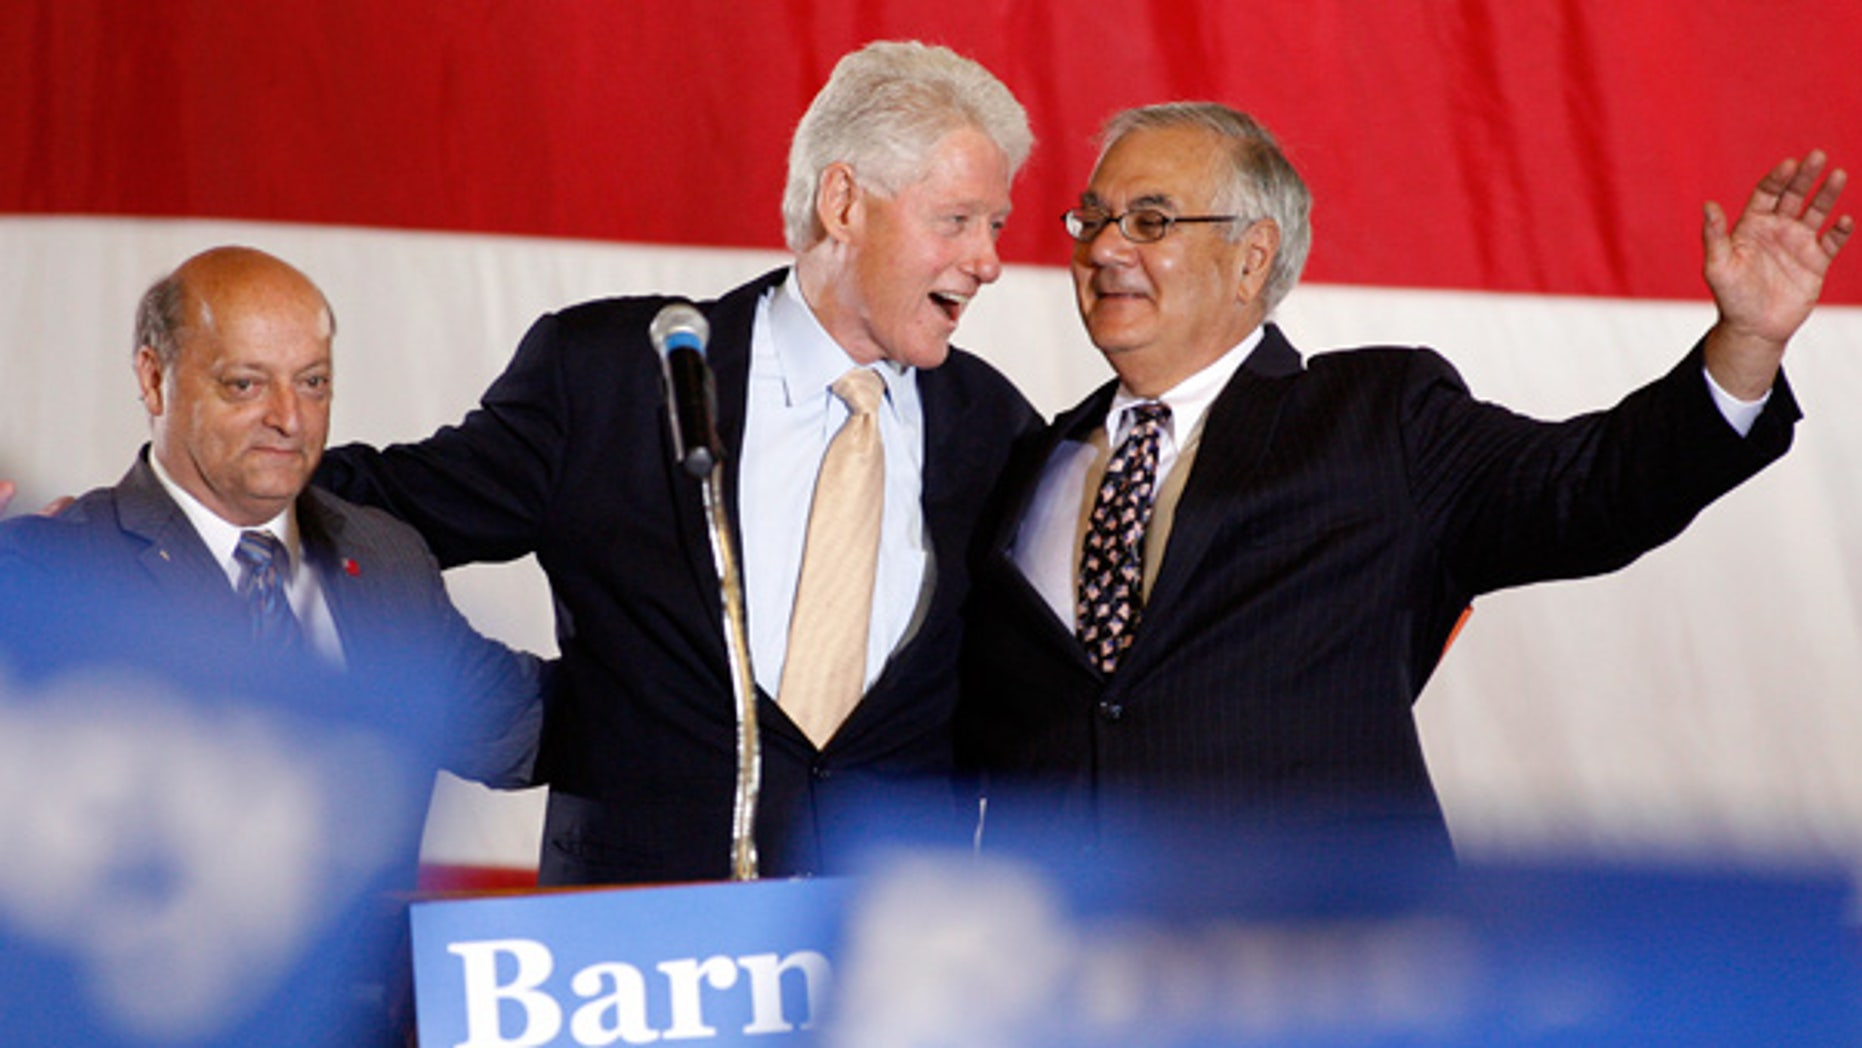 Sept. 26: Taunton, Mass., Mayor Charles Crowley, left, joins Bill Clinton and Barney Frank at a campaign rally.